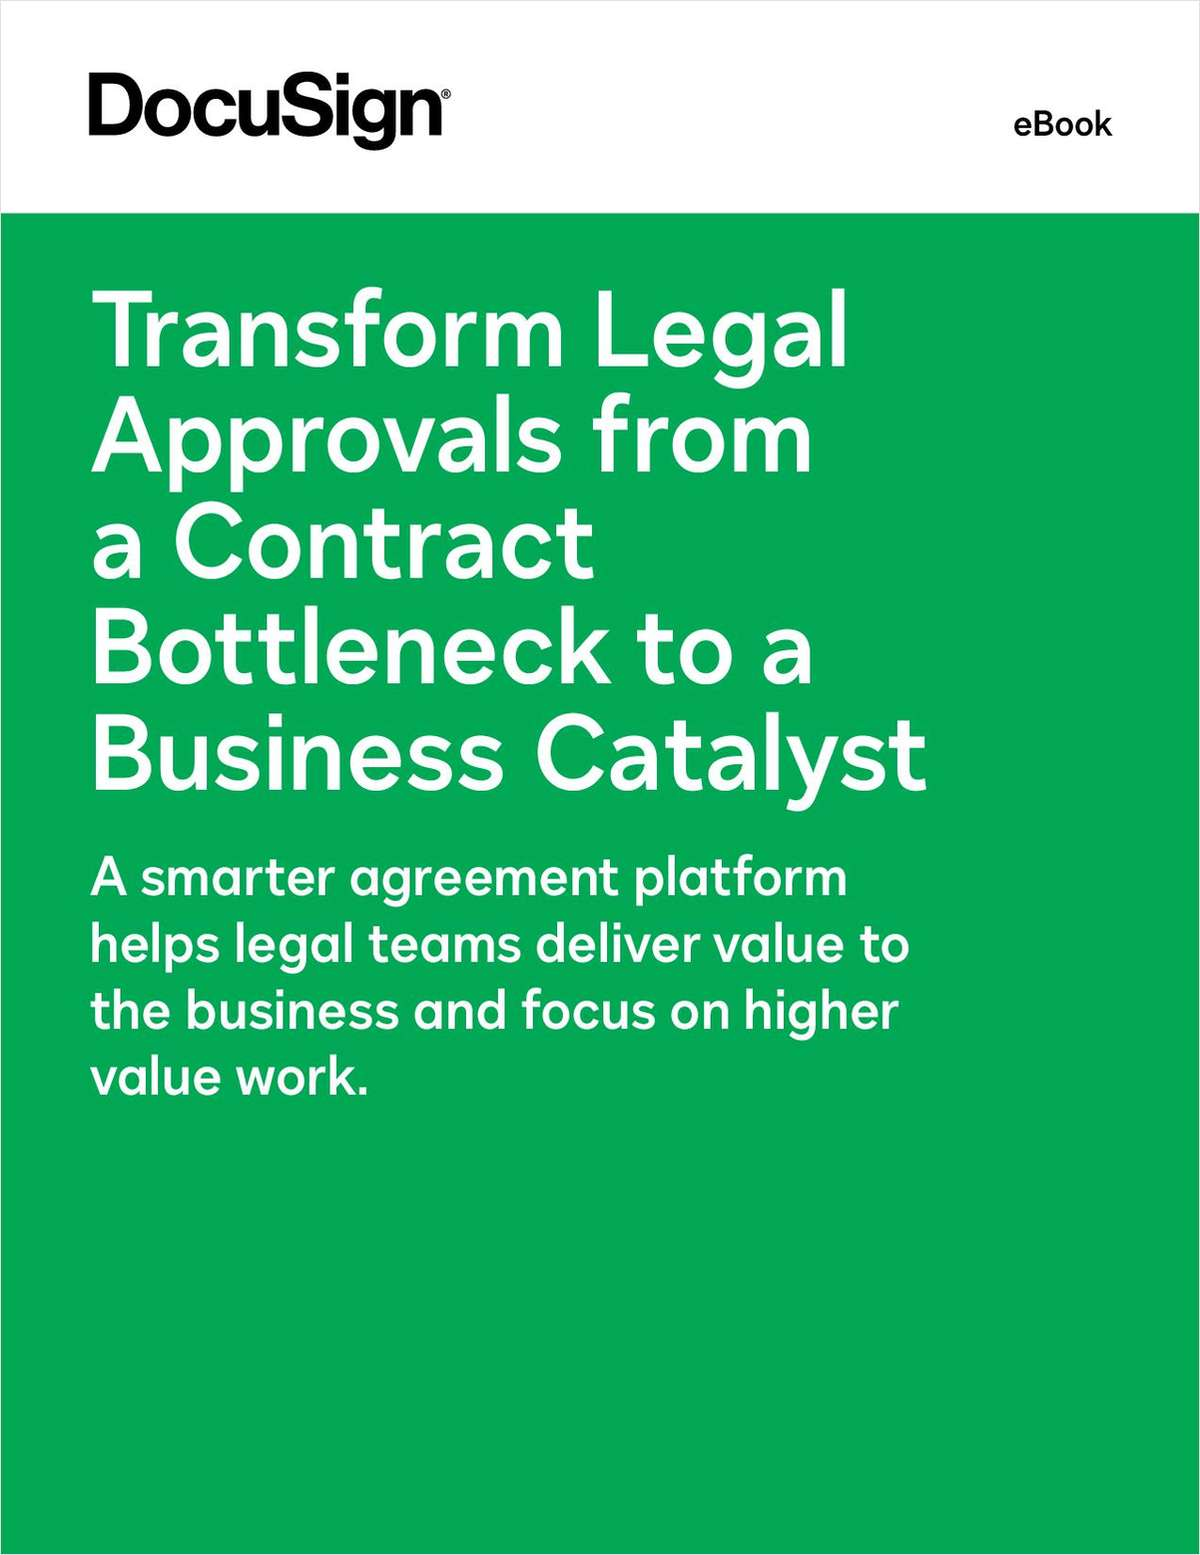 Transform Legal Approvals from a Contract Bottleneck to a Business Catalyst